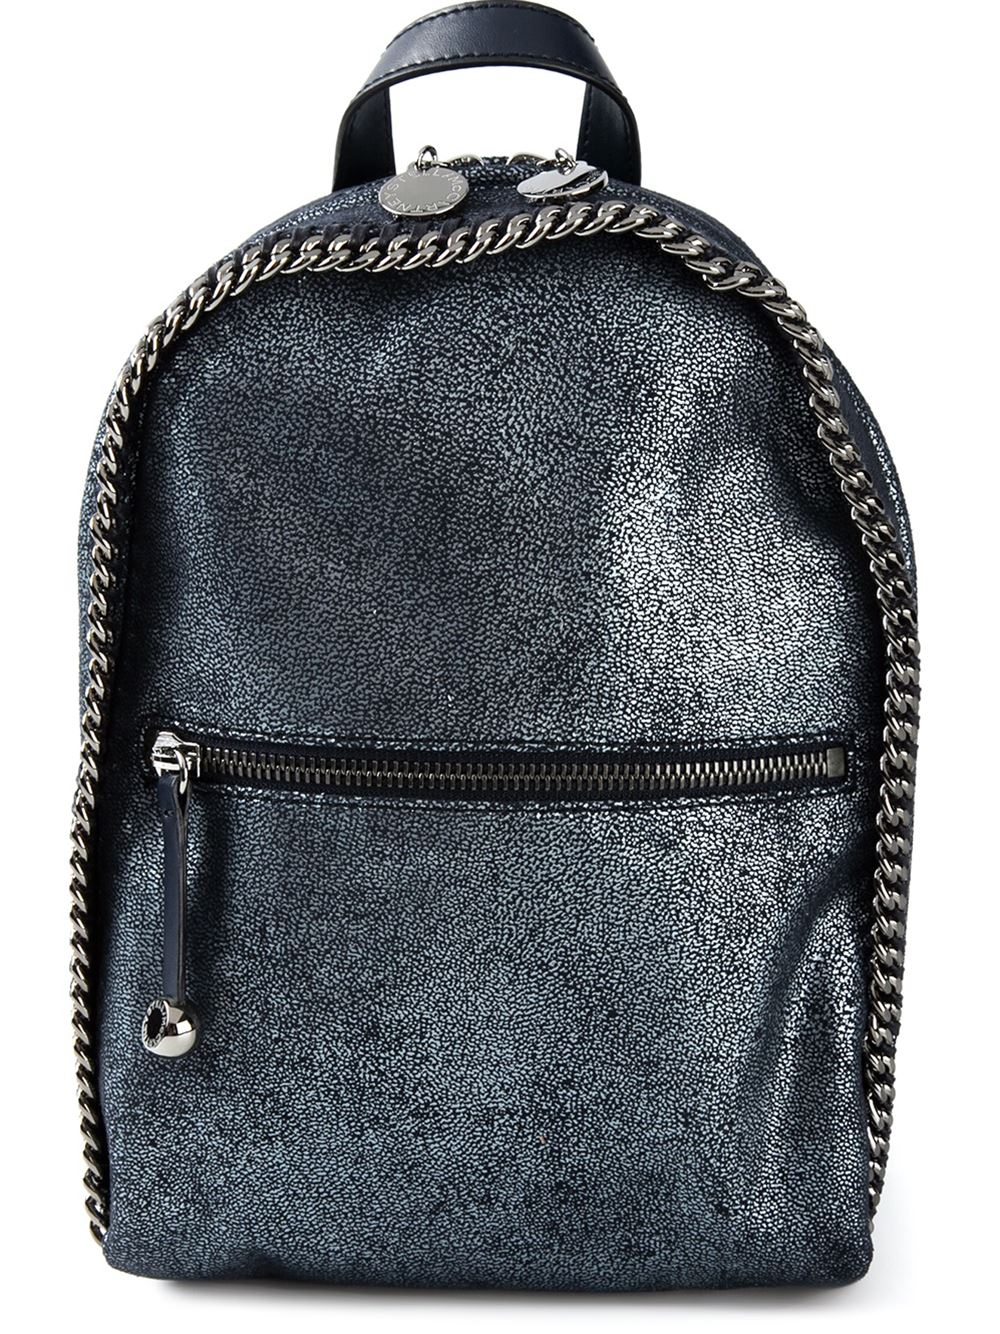 stella mccartney 39 falabella 39 backpack in blue lyst. Black Bedroom Furniture Sets. Home Design Ideas